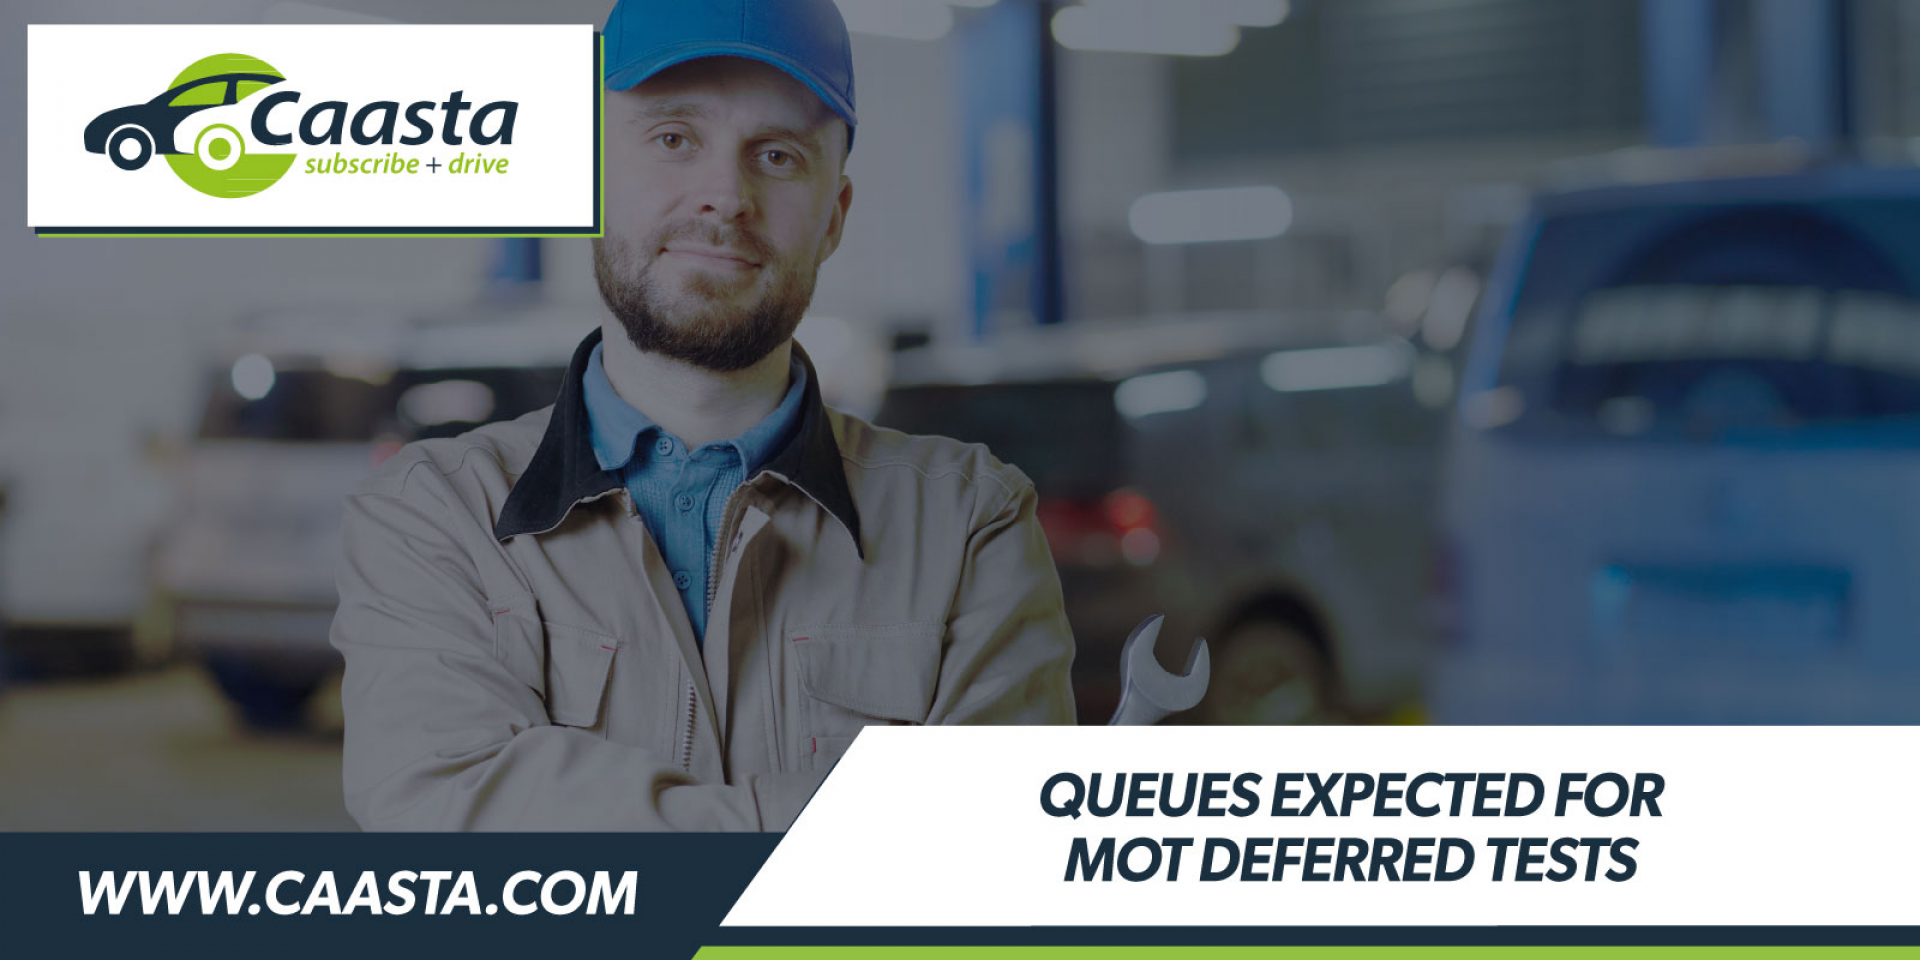 Queues expected for MoT deferred tests